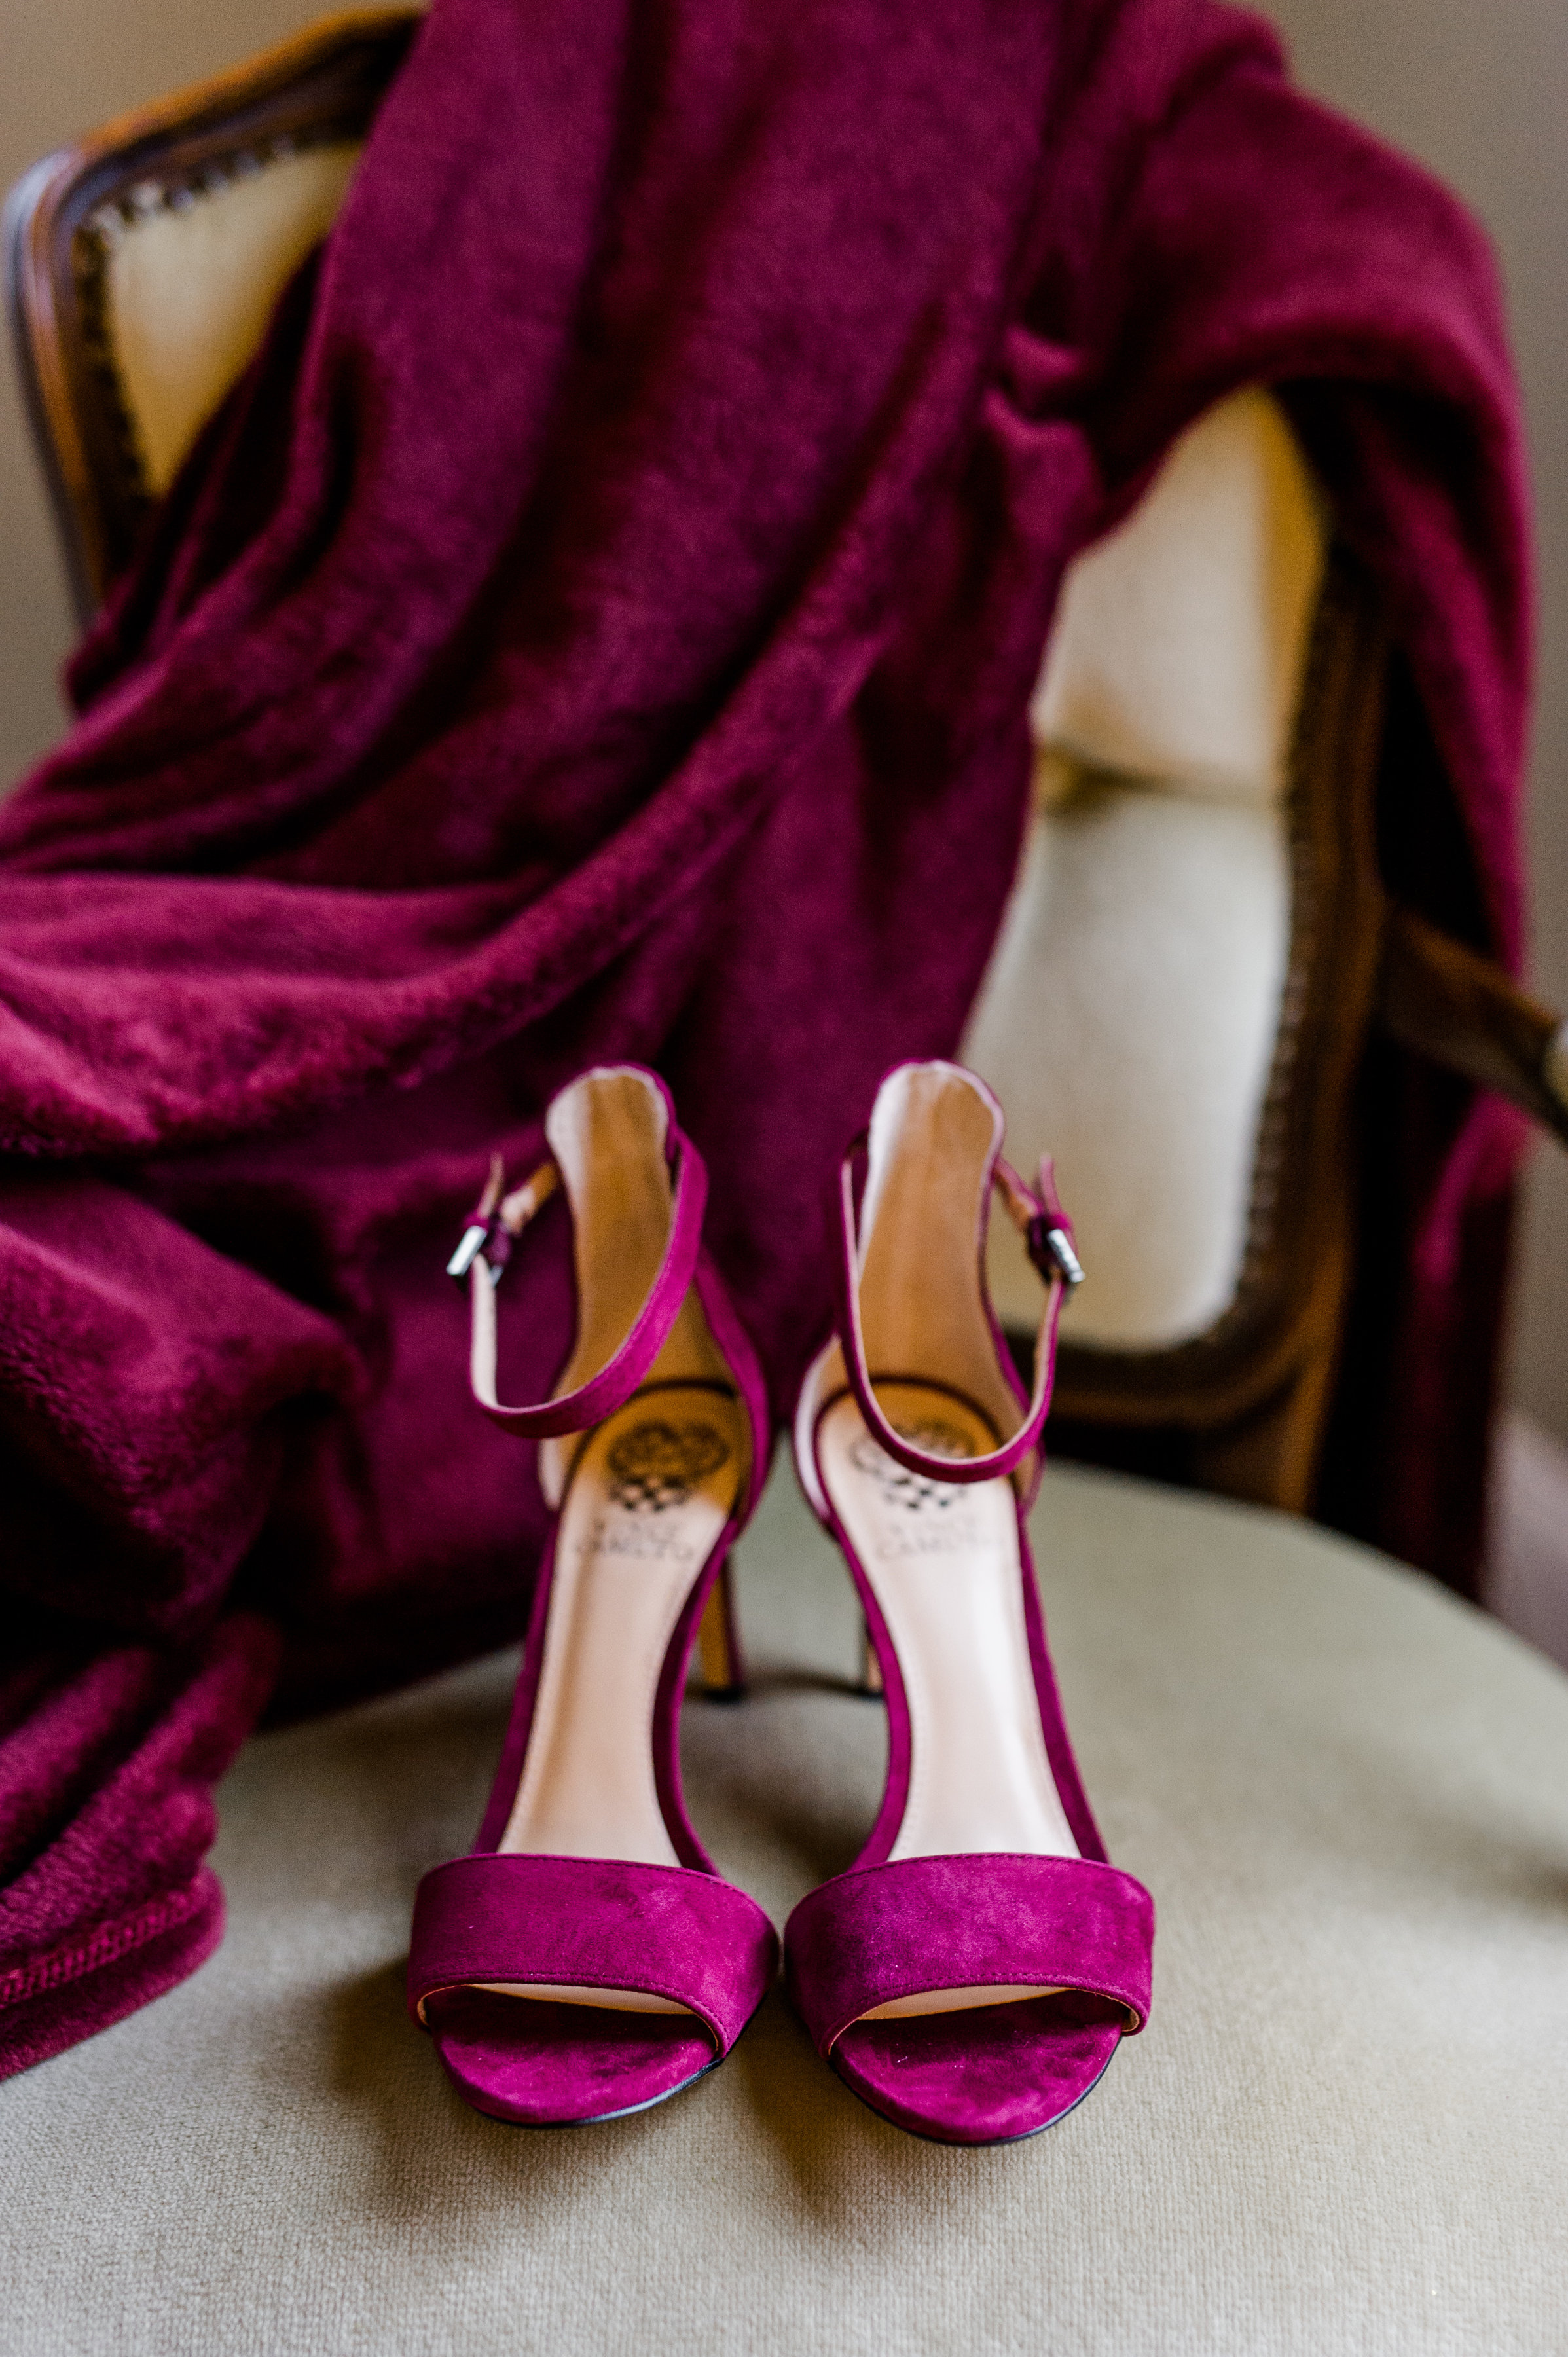 Shoes are fun and can add a little 'pop' of color!